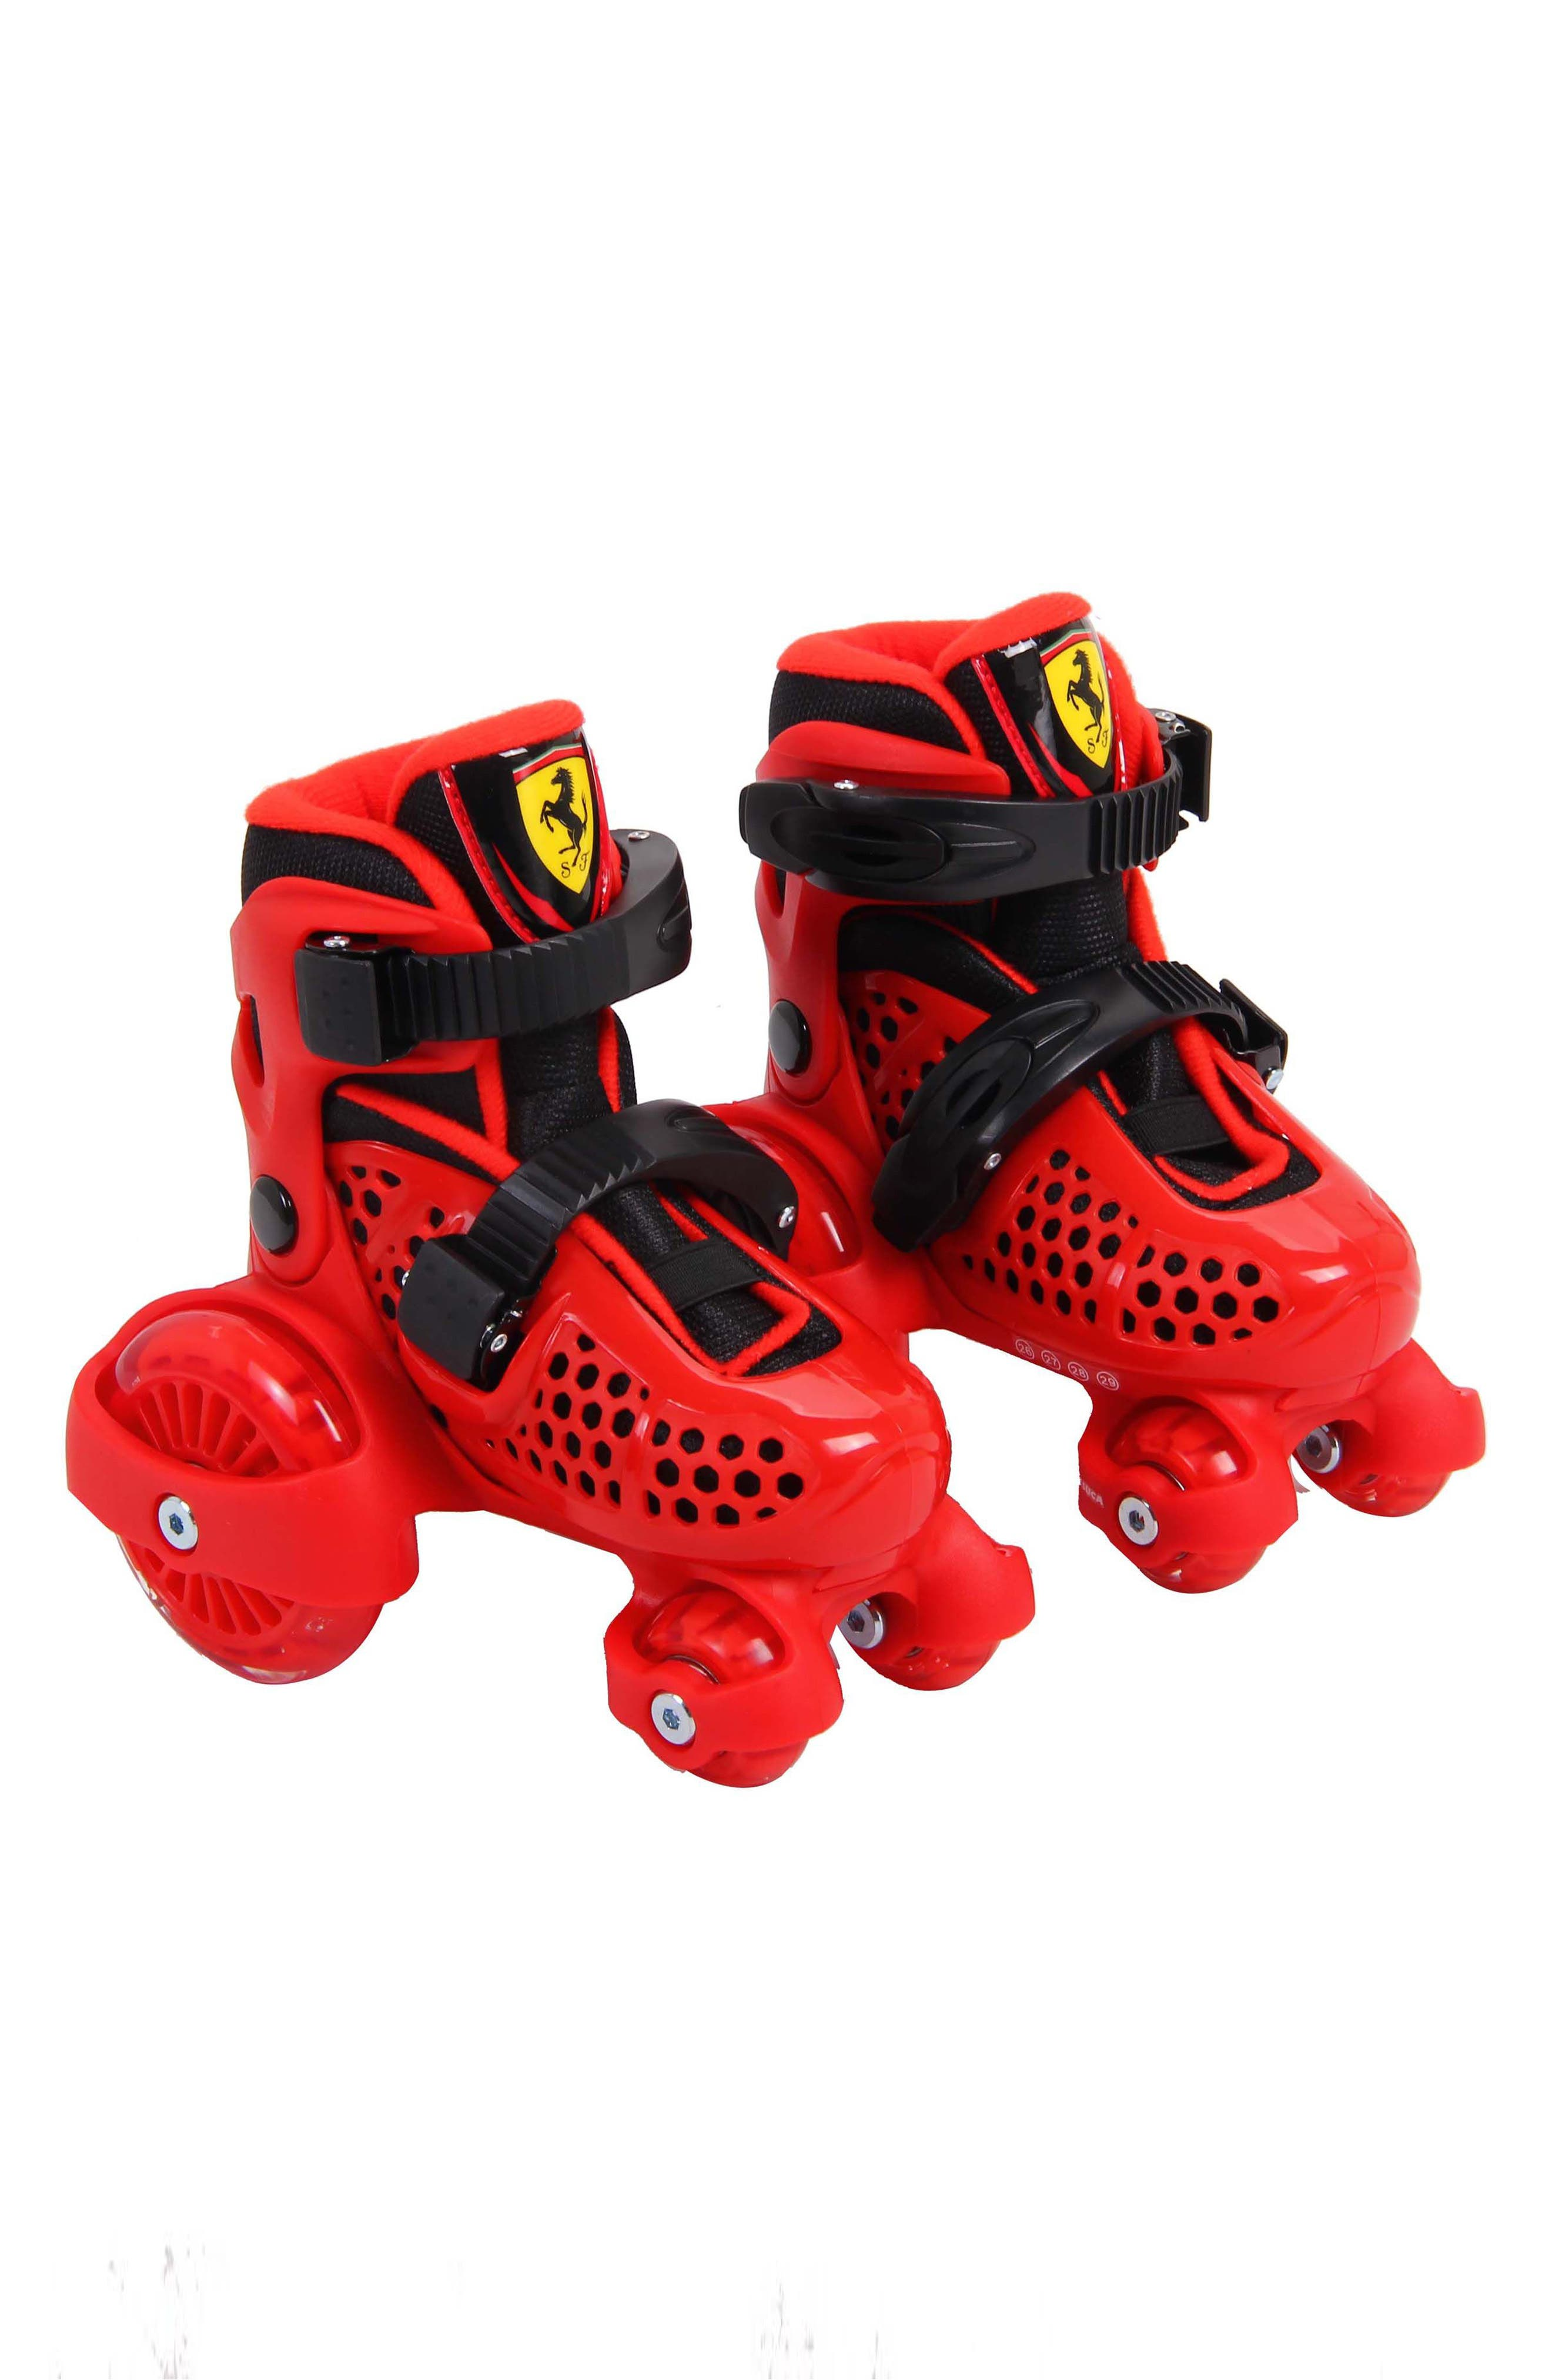 My First Skate Rollerskate & Protective Gear Set,                         Main,                         color, Red